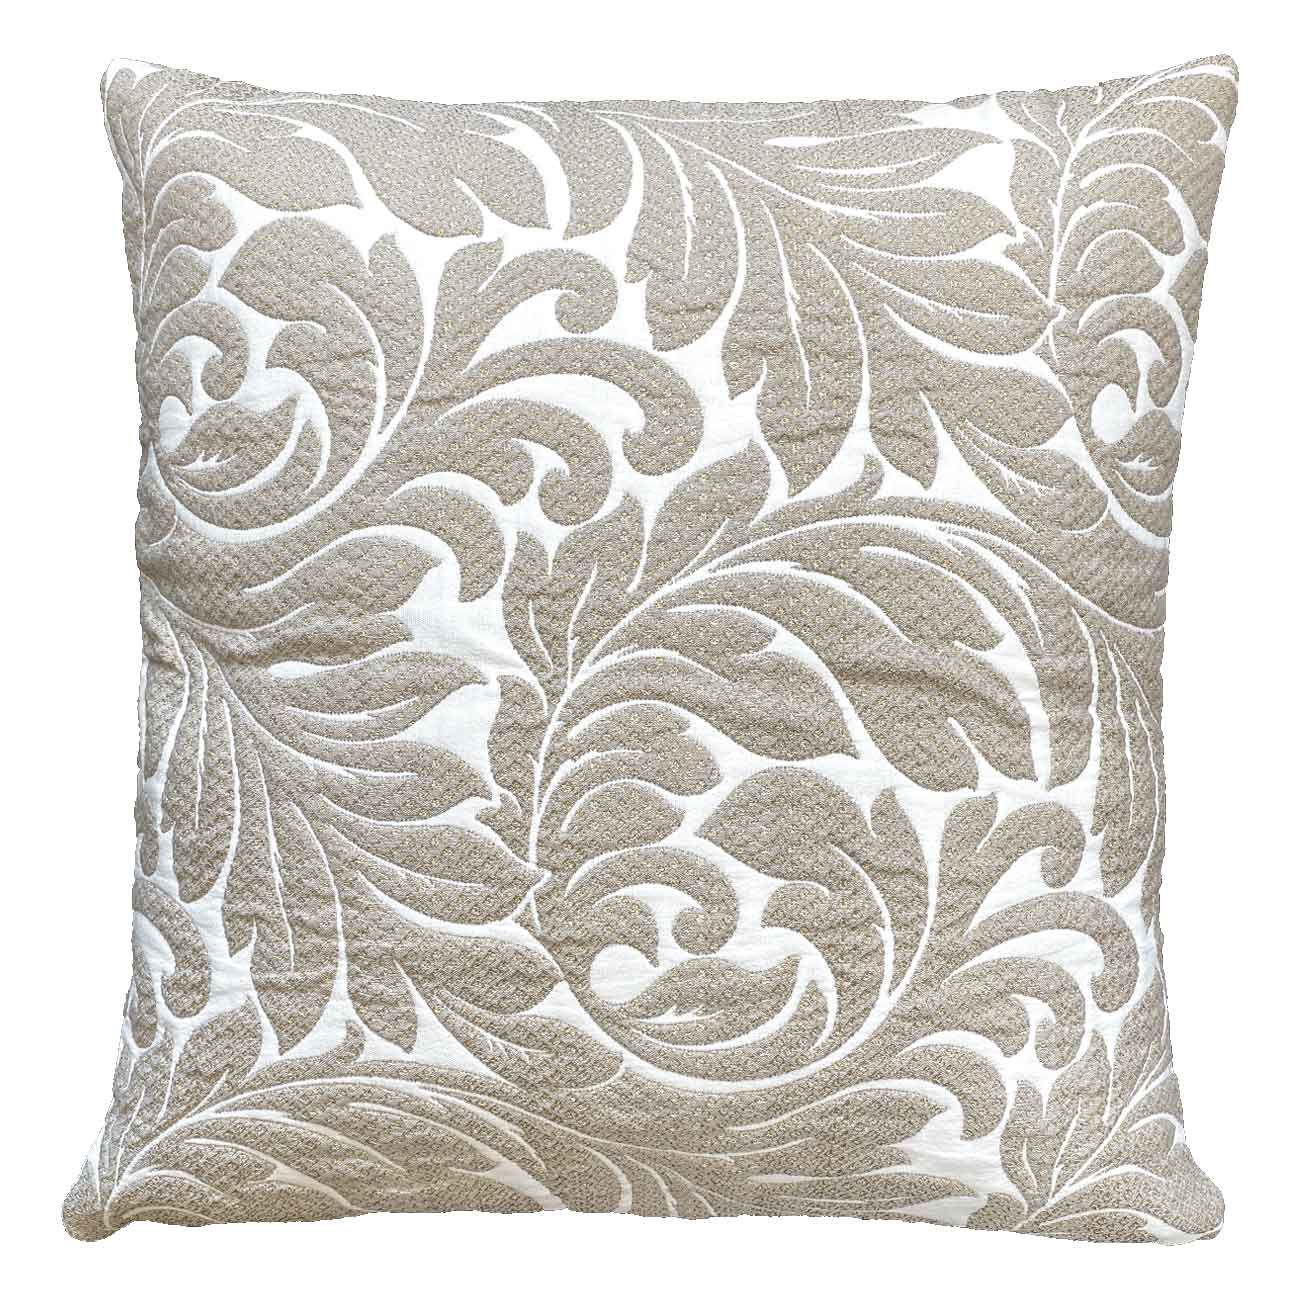 Quilted fabric pillow with floral pattern